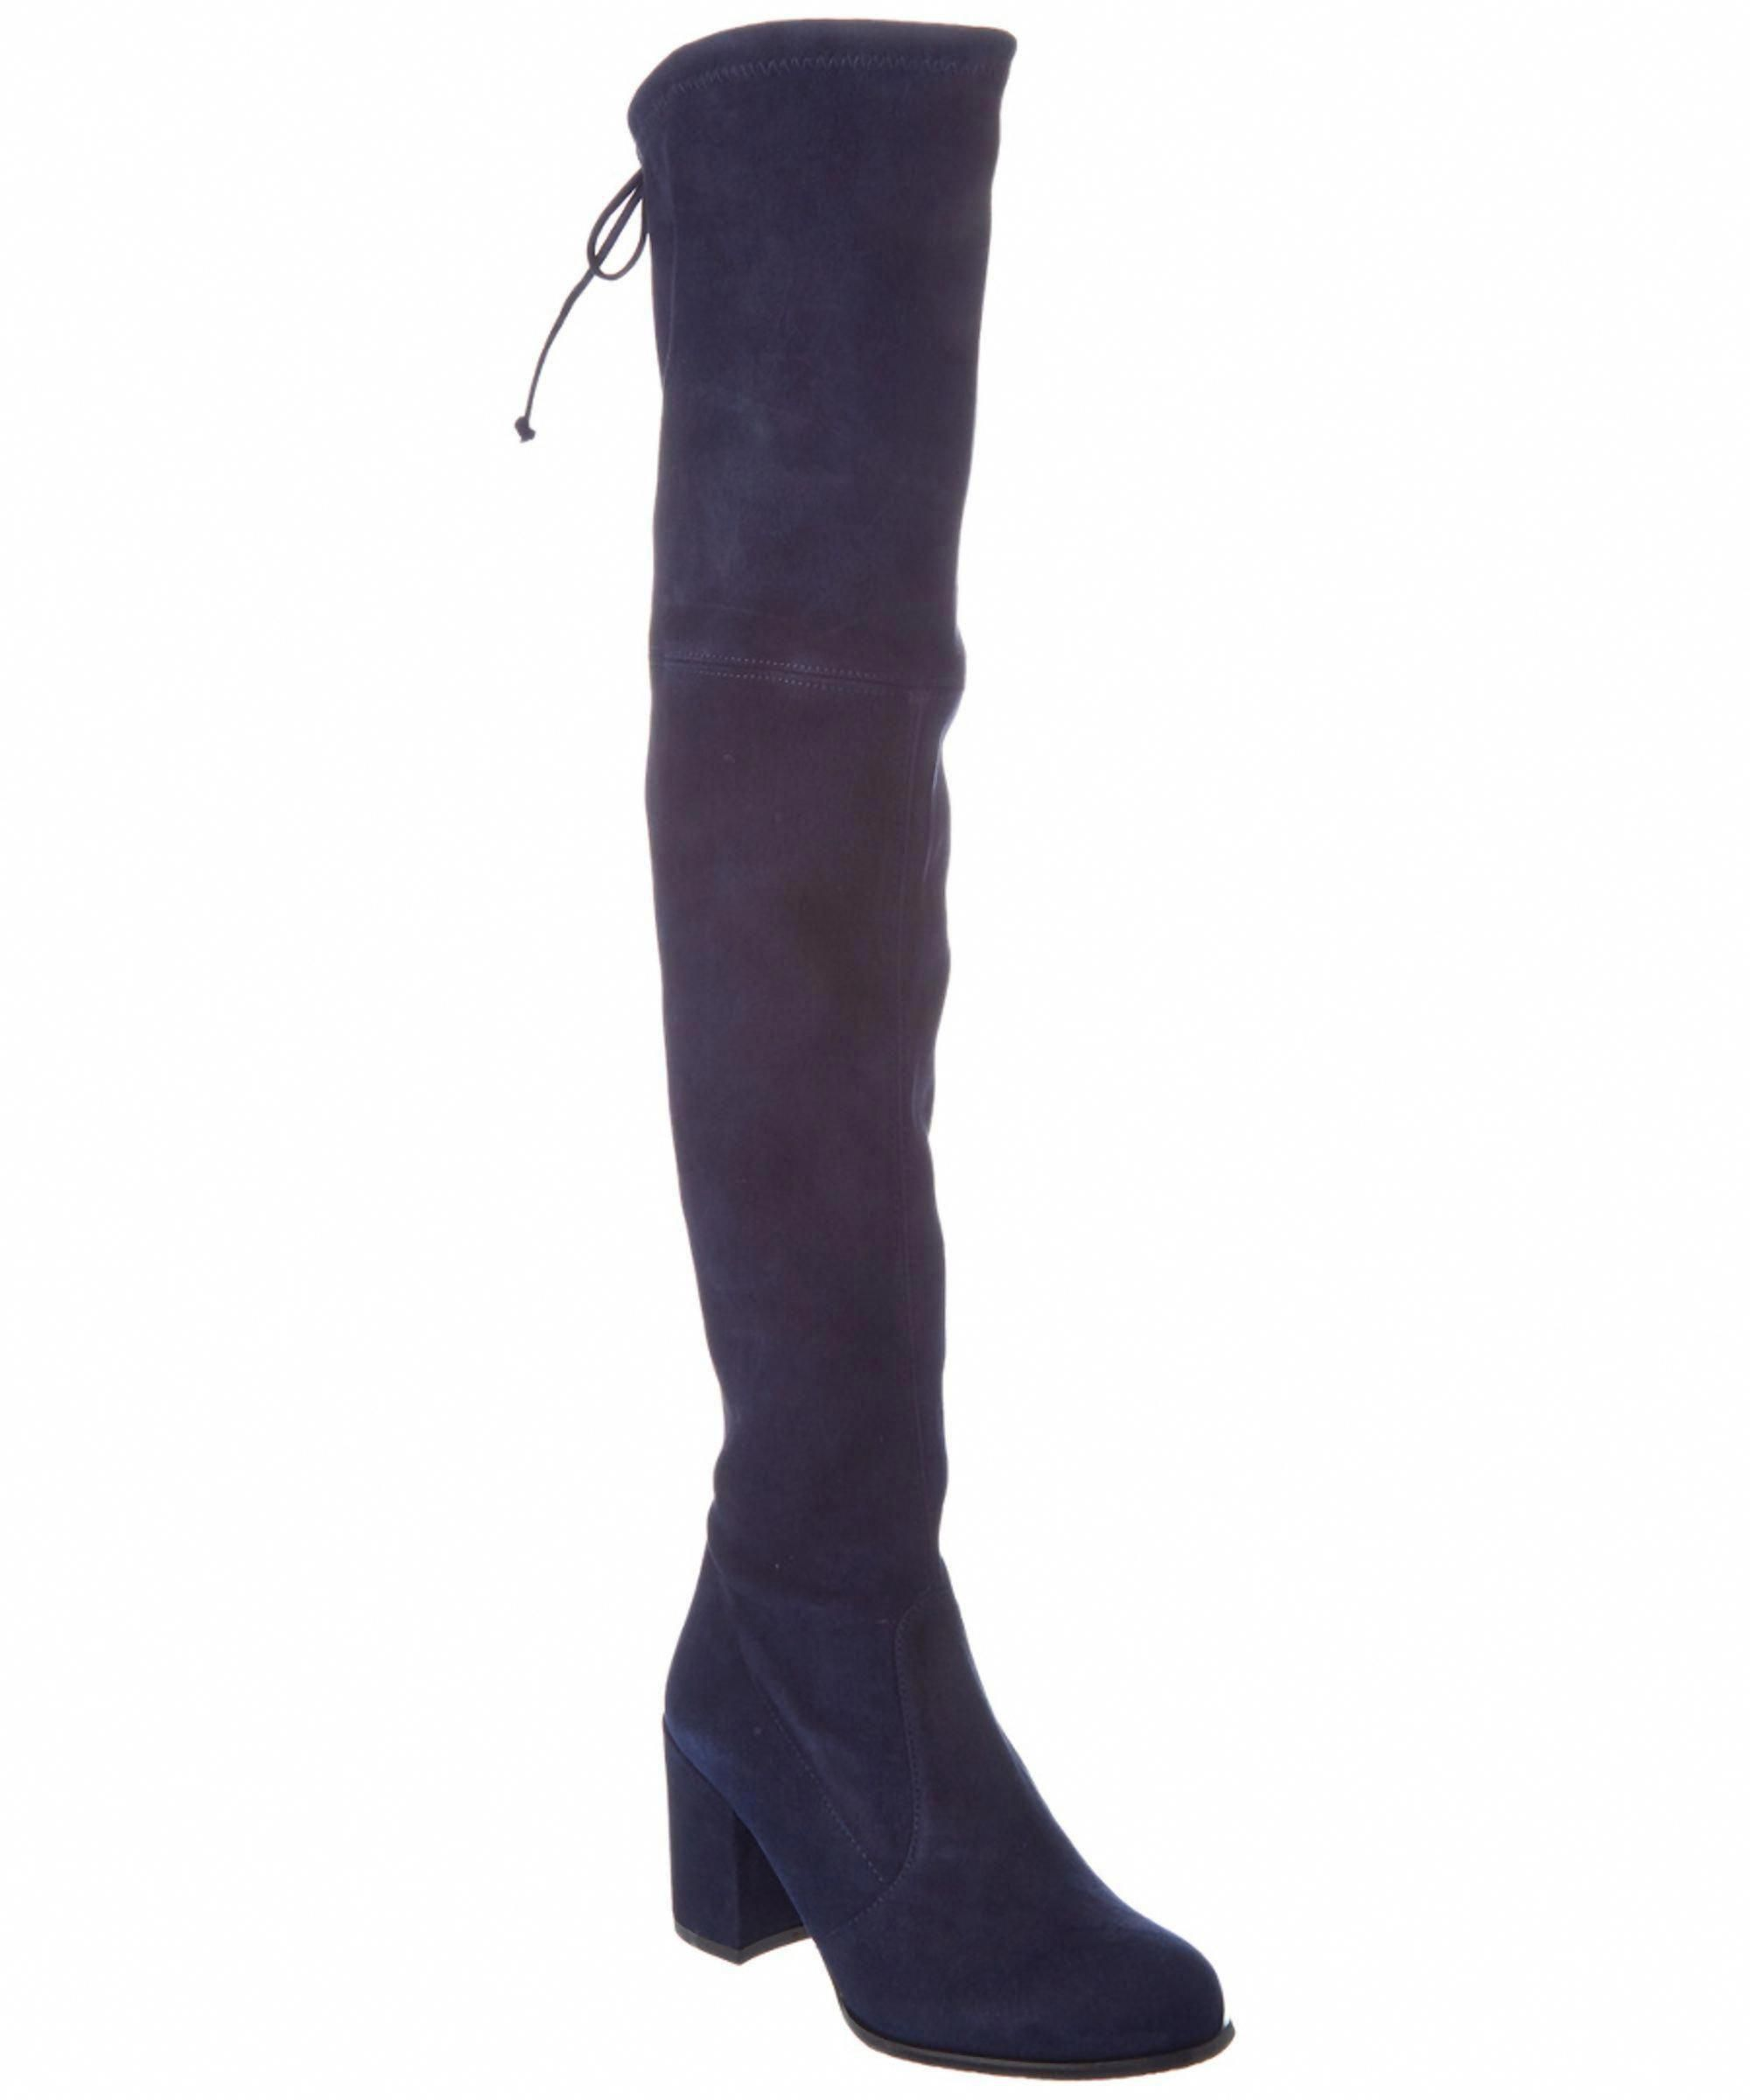 e1bd019739 STUART WEITZMAN | Stuart Weitzman Tieland Suede Over-The-Knee Boot #Shoes #